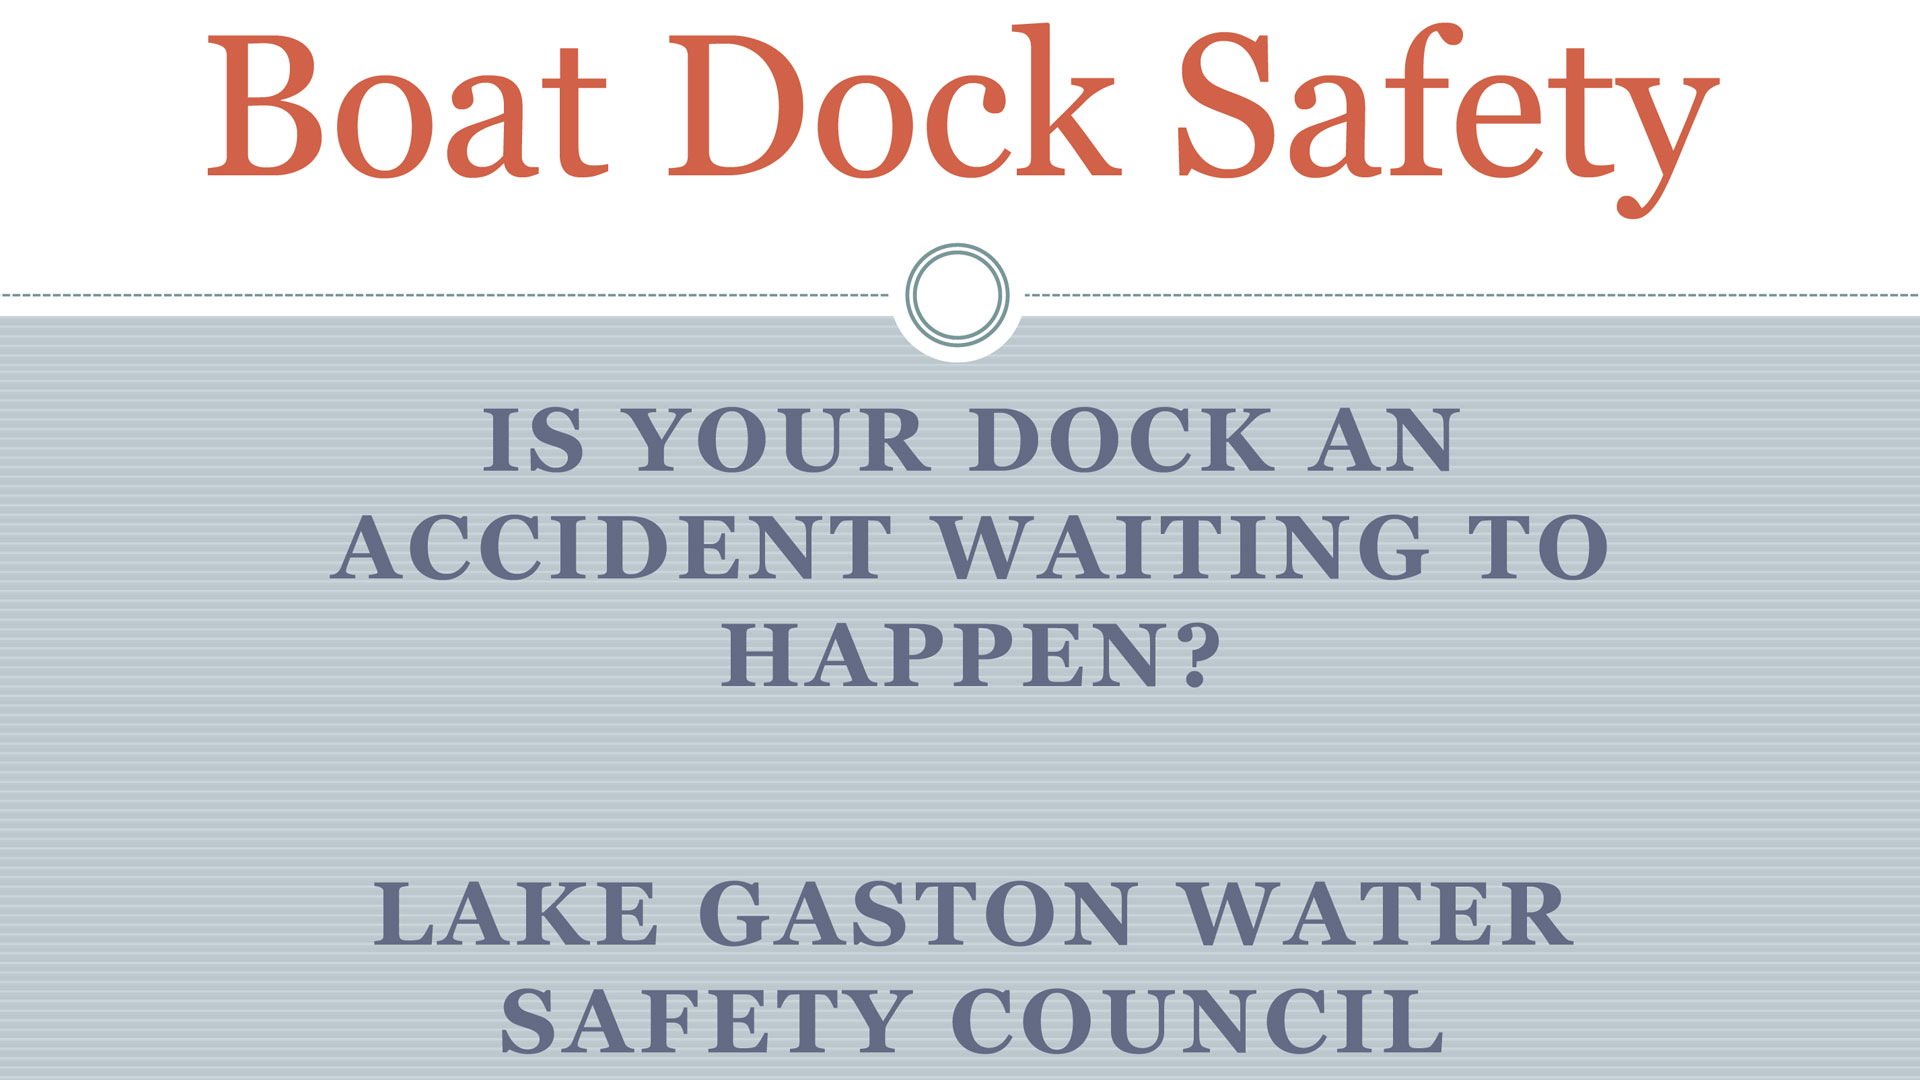 Lake Gaston Water Safety Council Boat Dock Safety